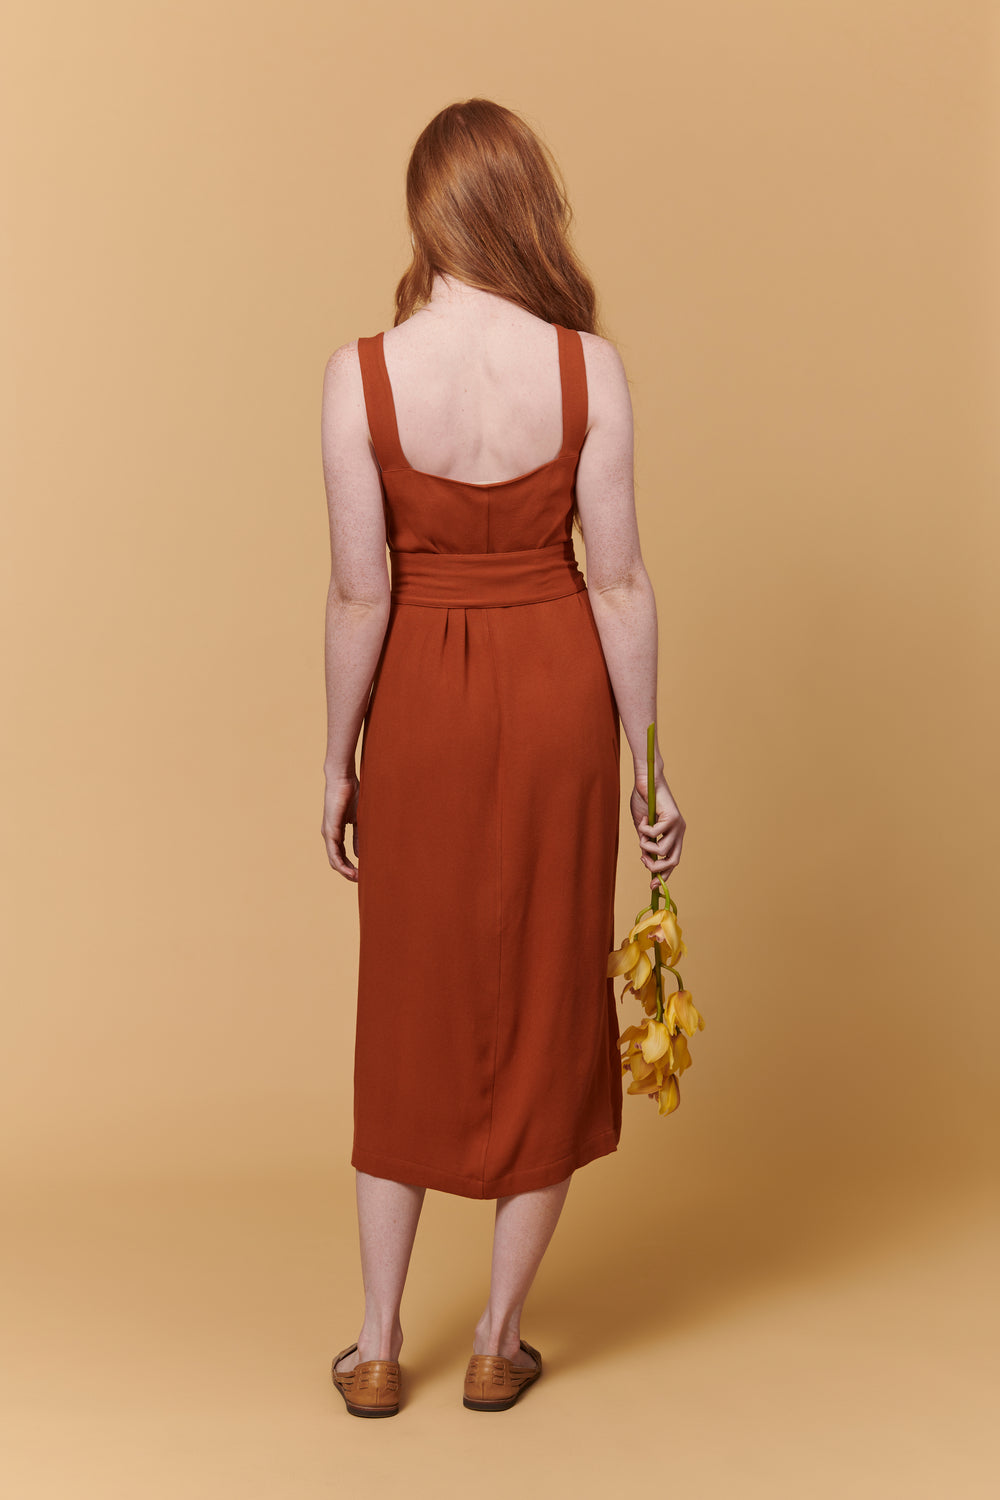 Samantha Dress in Rust - Whimsy & Row